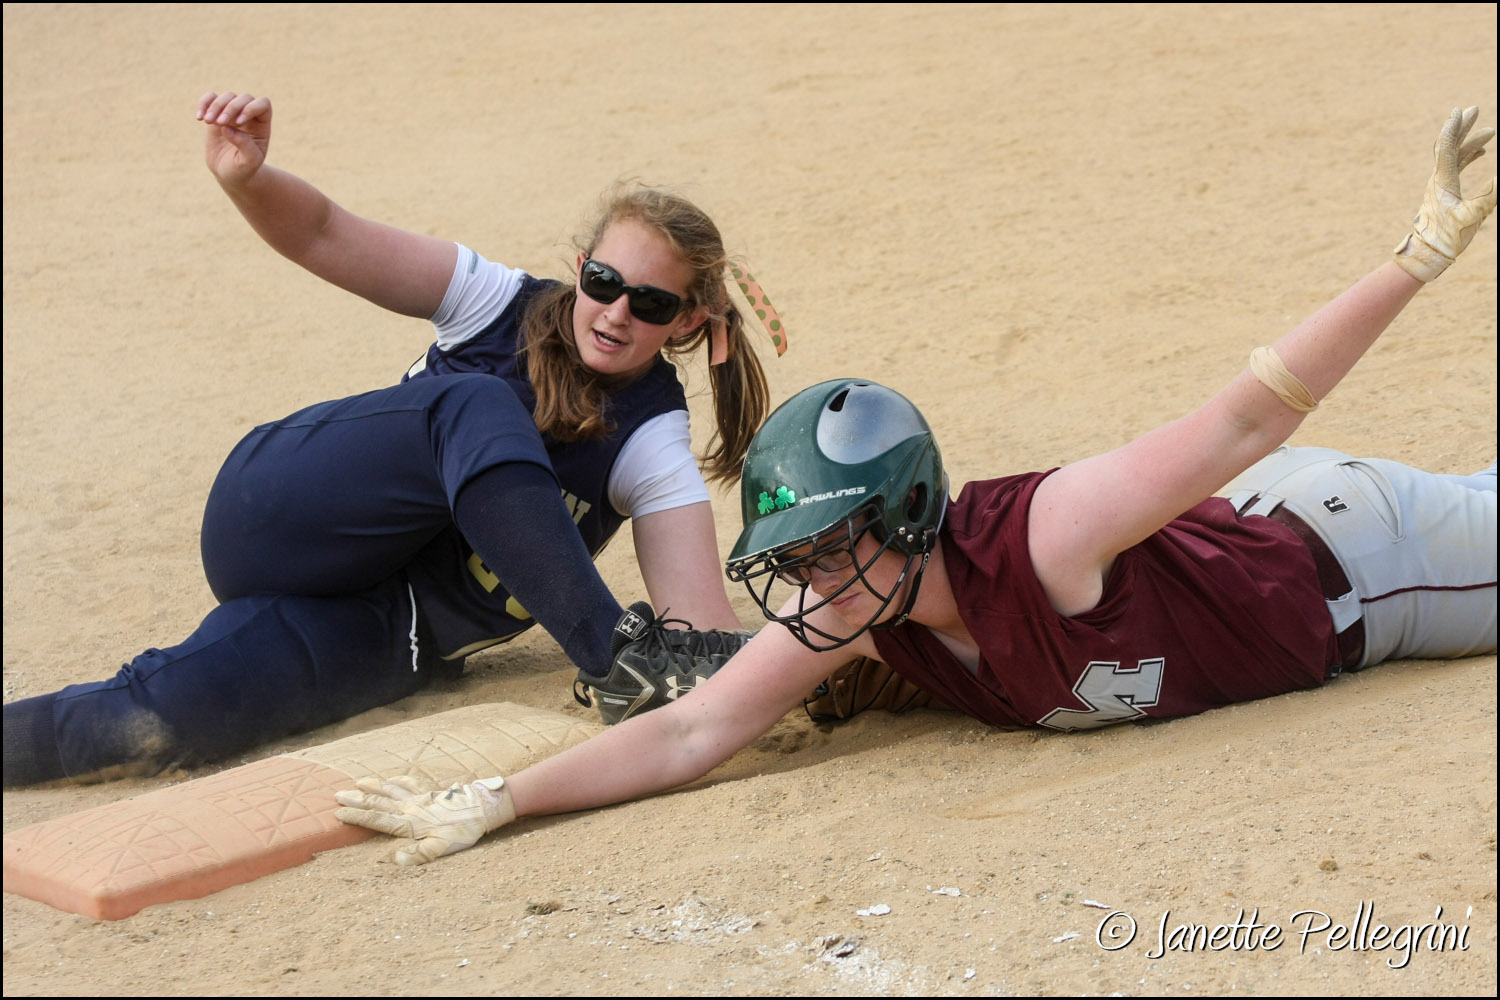 010 05-13-11 90784 Mepham VS Baldwin Softball 084 web ©.jpg